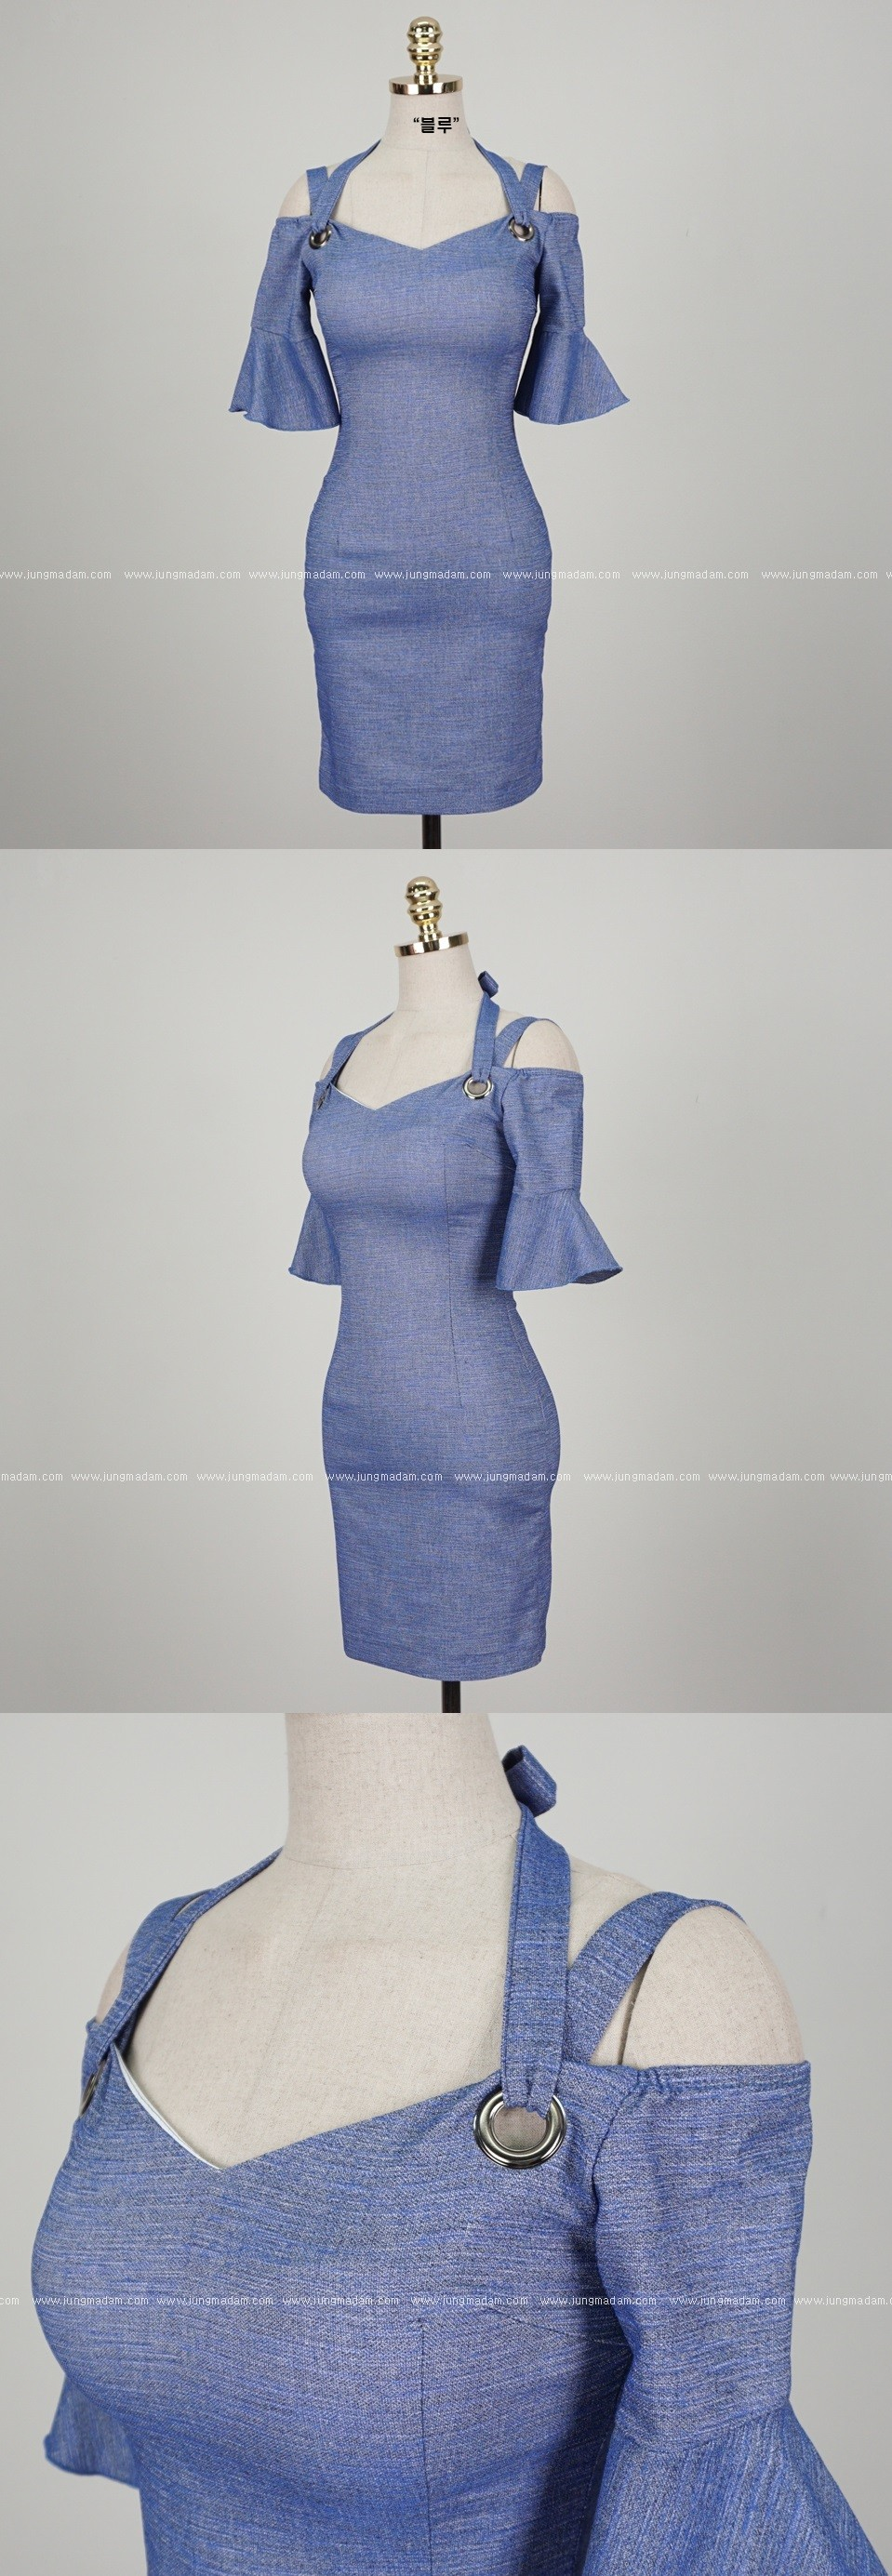 GSS716 Dress blue $21.08 50XXXX4338961-SD1LVCF27-B